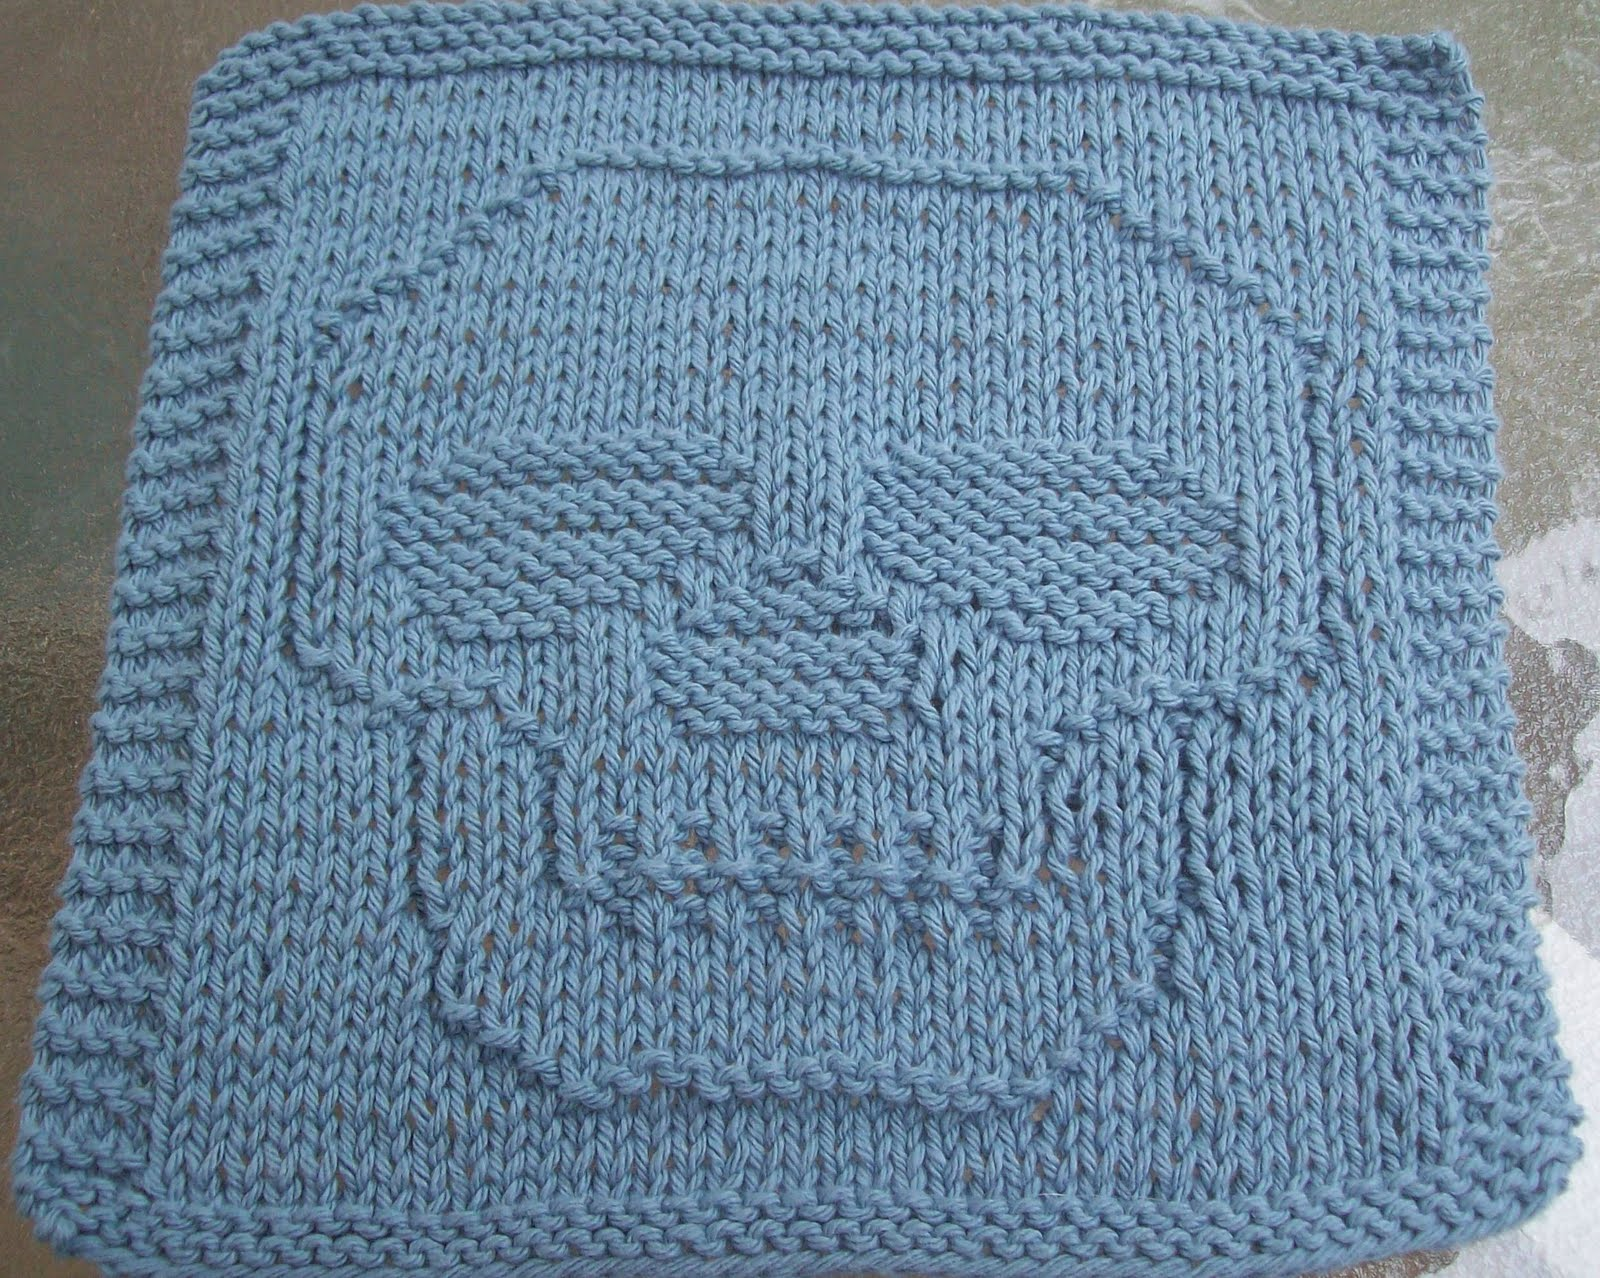 Free Knitting Patterns Dishcloths : DigKnitty Designs: Just a Skull Knit Dishcloth Pattern